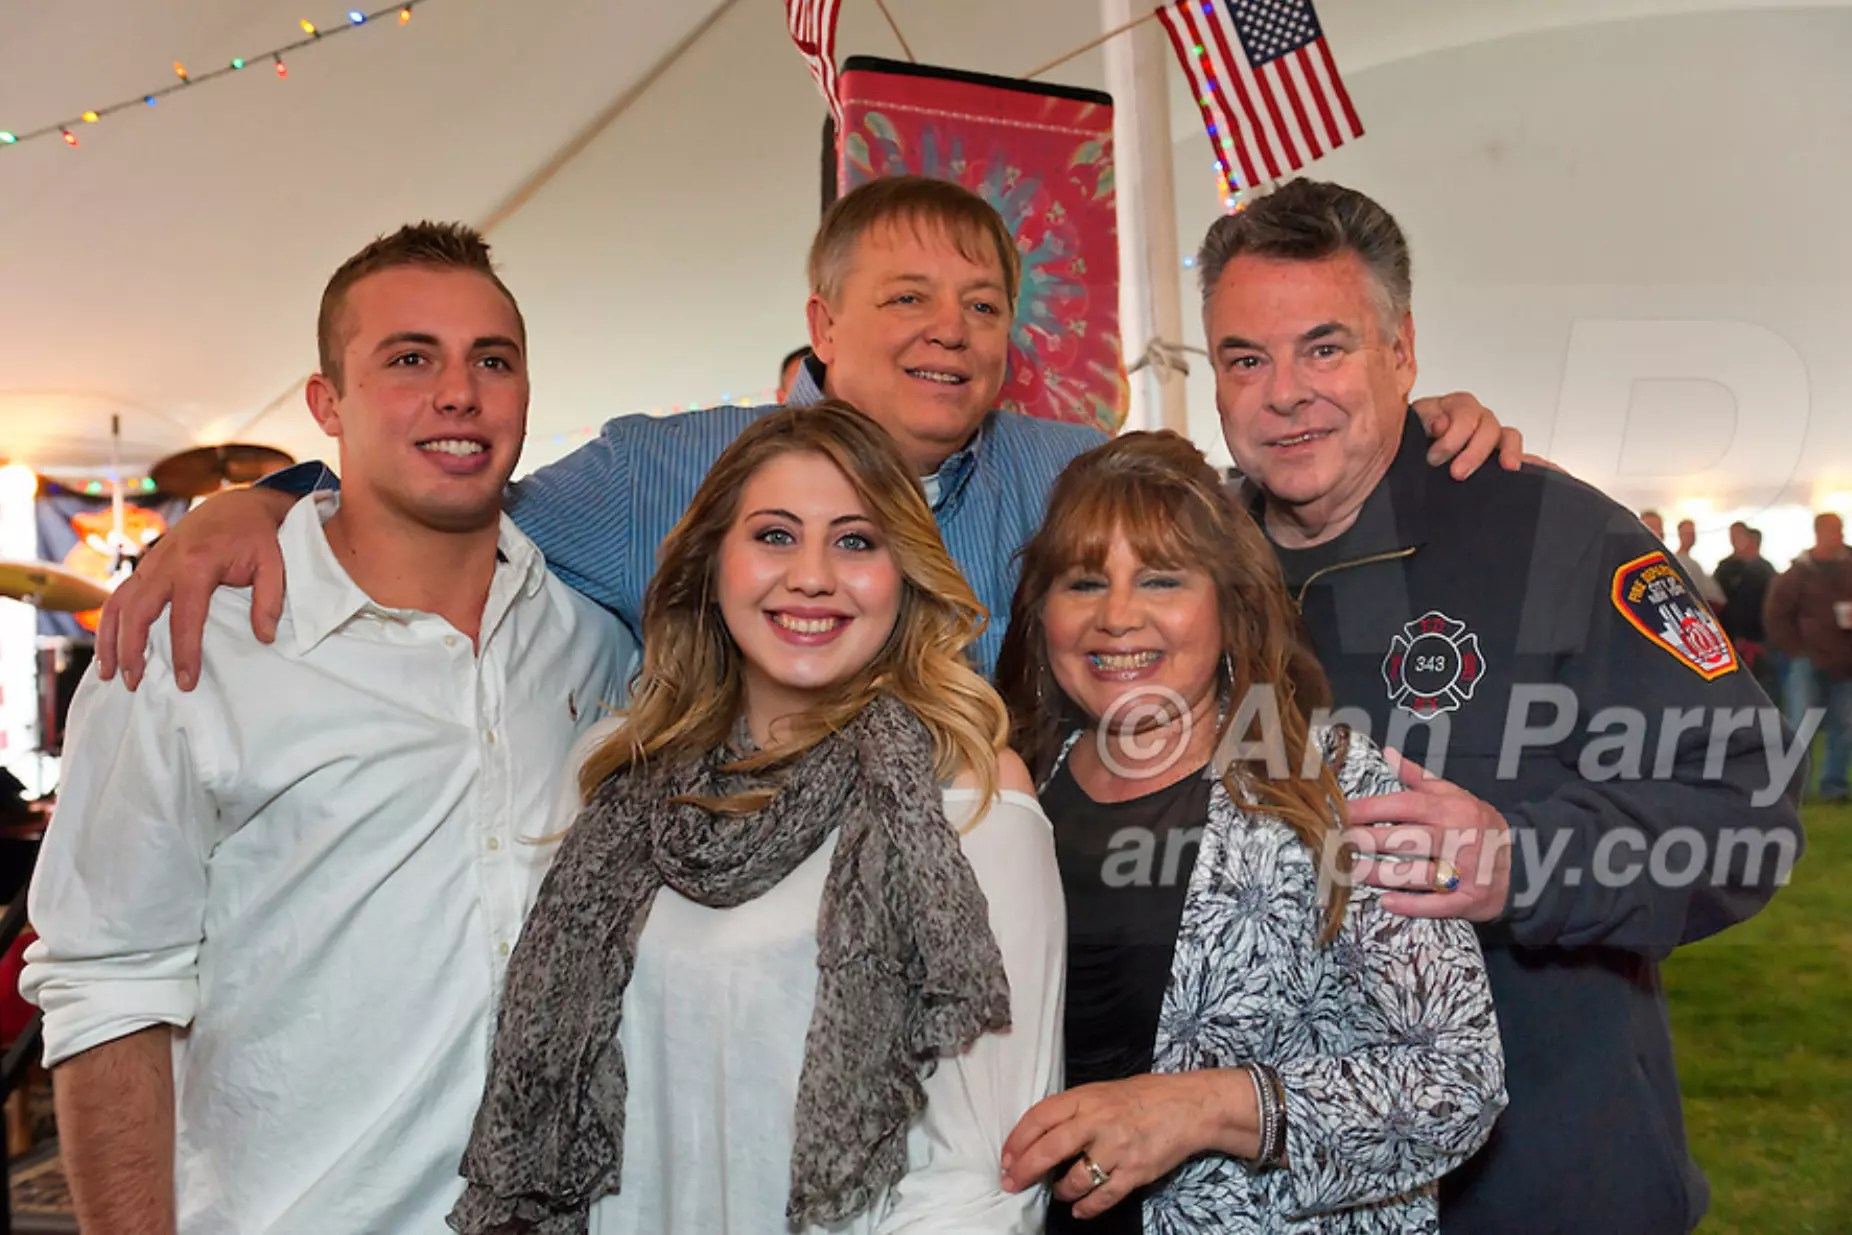 East Meadow, New York, USA. March 31, 2012. Firefighter Ray Pfeifer, his wife Caryn Pfeifer, their son Terrence Pfeifer and daughter Taylor Pfeifer, and New York Congressman Pete King pose for picture at Fundraiser for Ray Pfeifer - battling cancer after months of recovery efforts at Ground Zero following 9/11 2001 Twin Towers attack = at East Meadow Firefighters Benevolent Hall.